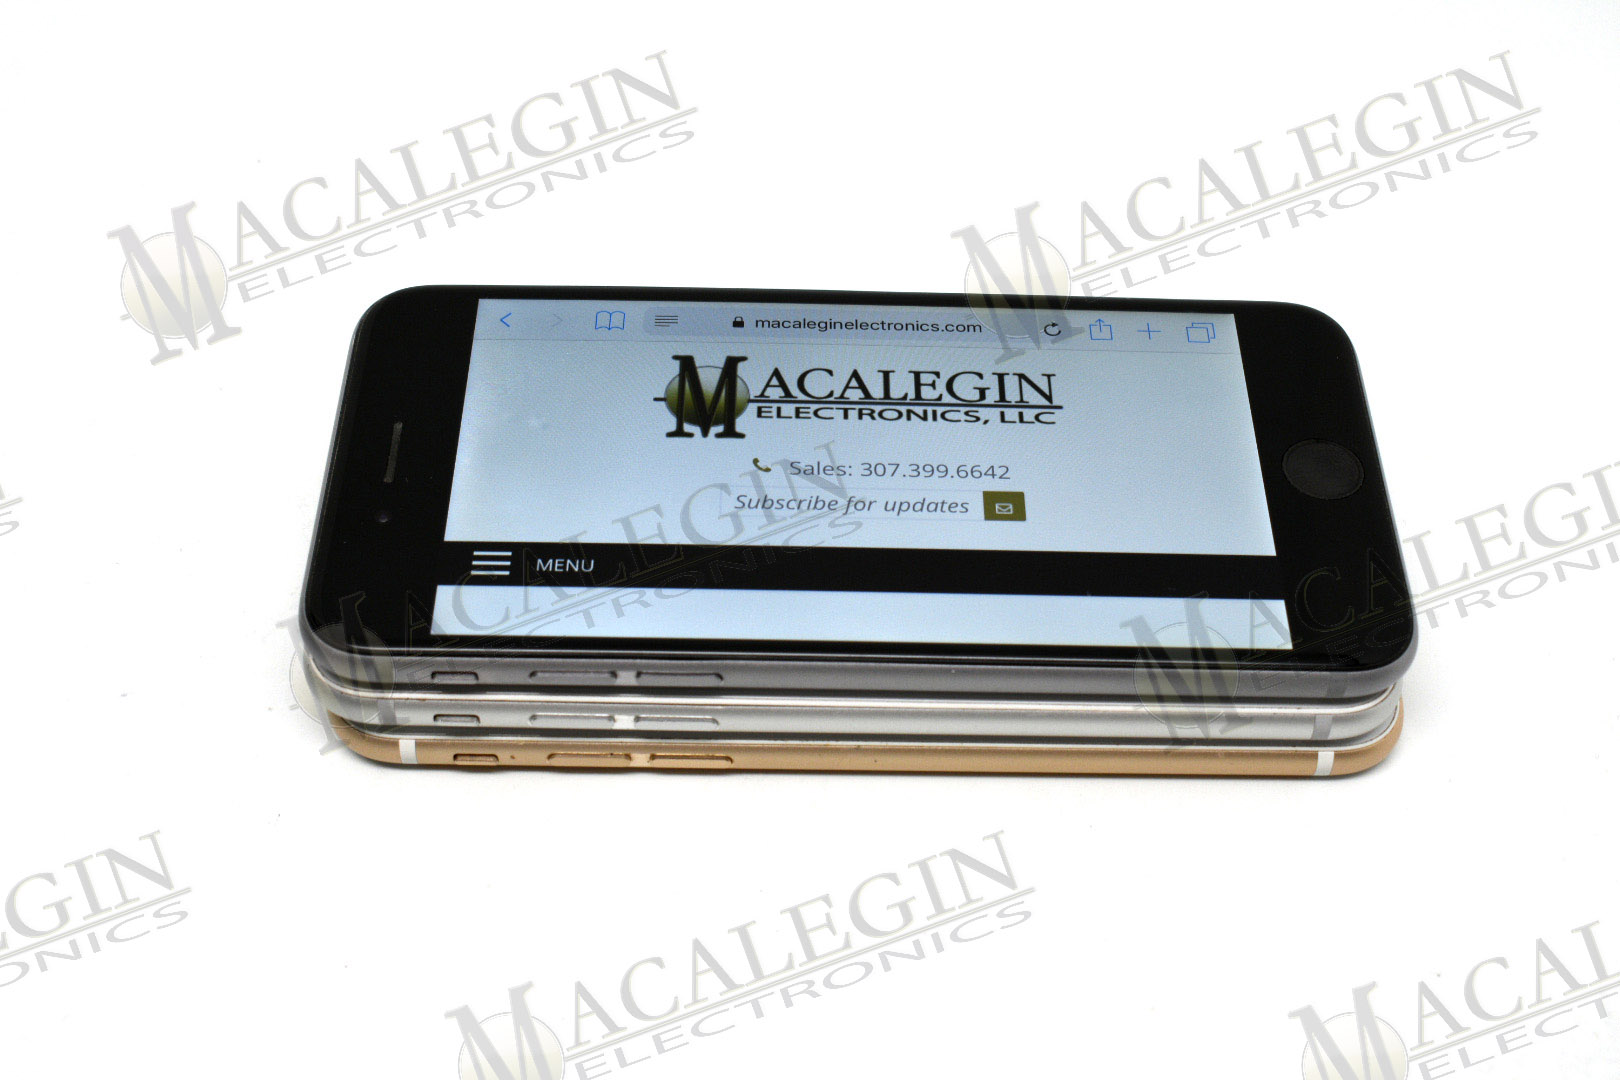 Used APPLE A1549 IPHONE 6 64GB UNLOCKED in PFL condition for sale from Macalegin Electronics at $105 a piece.